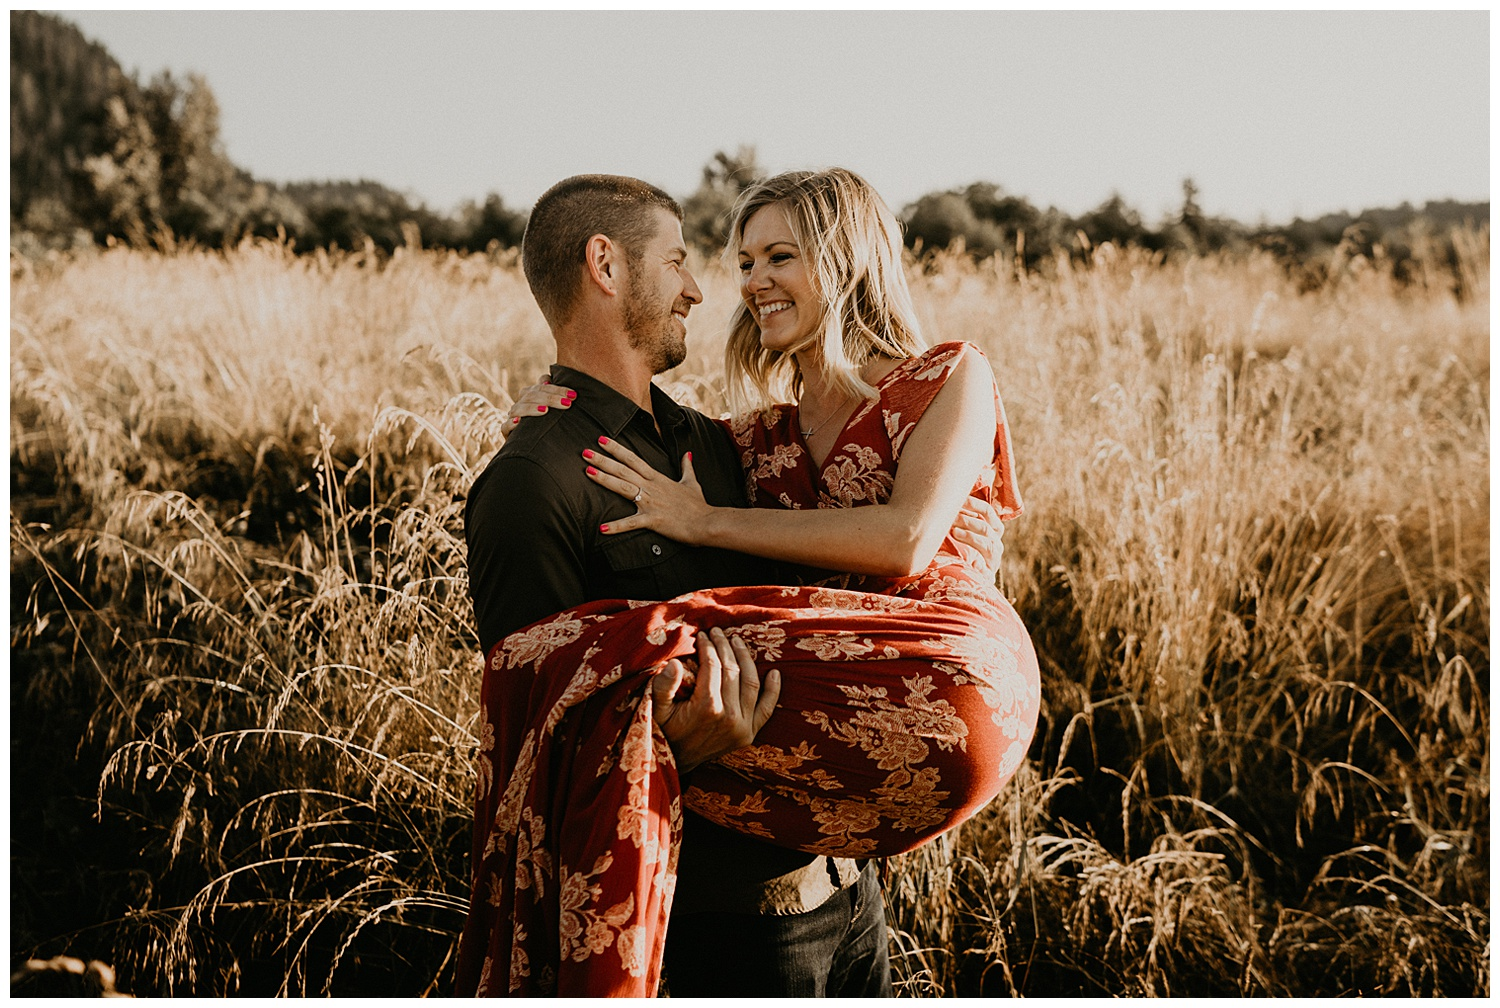 greater Seattle area engagement session